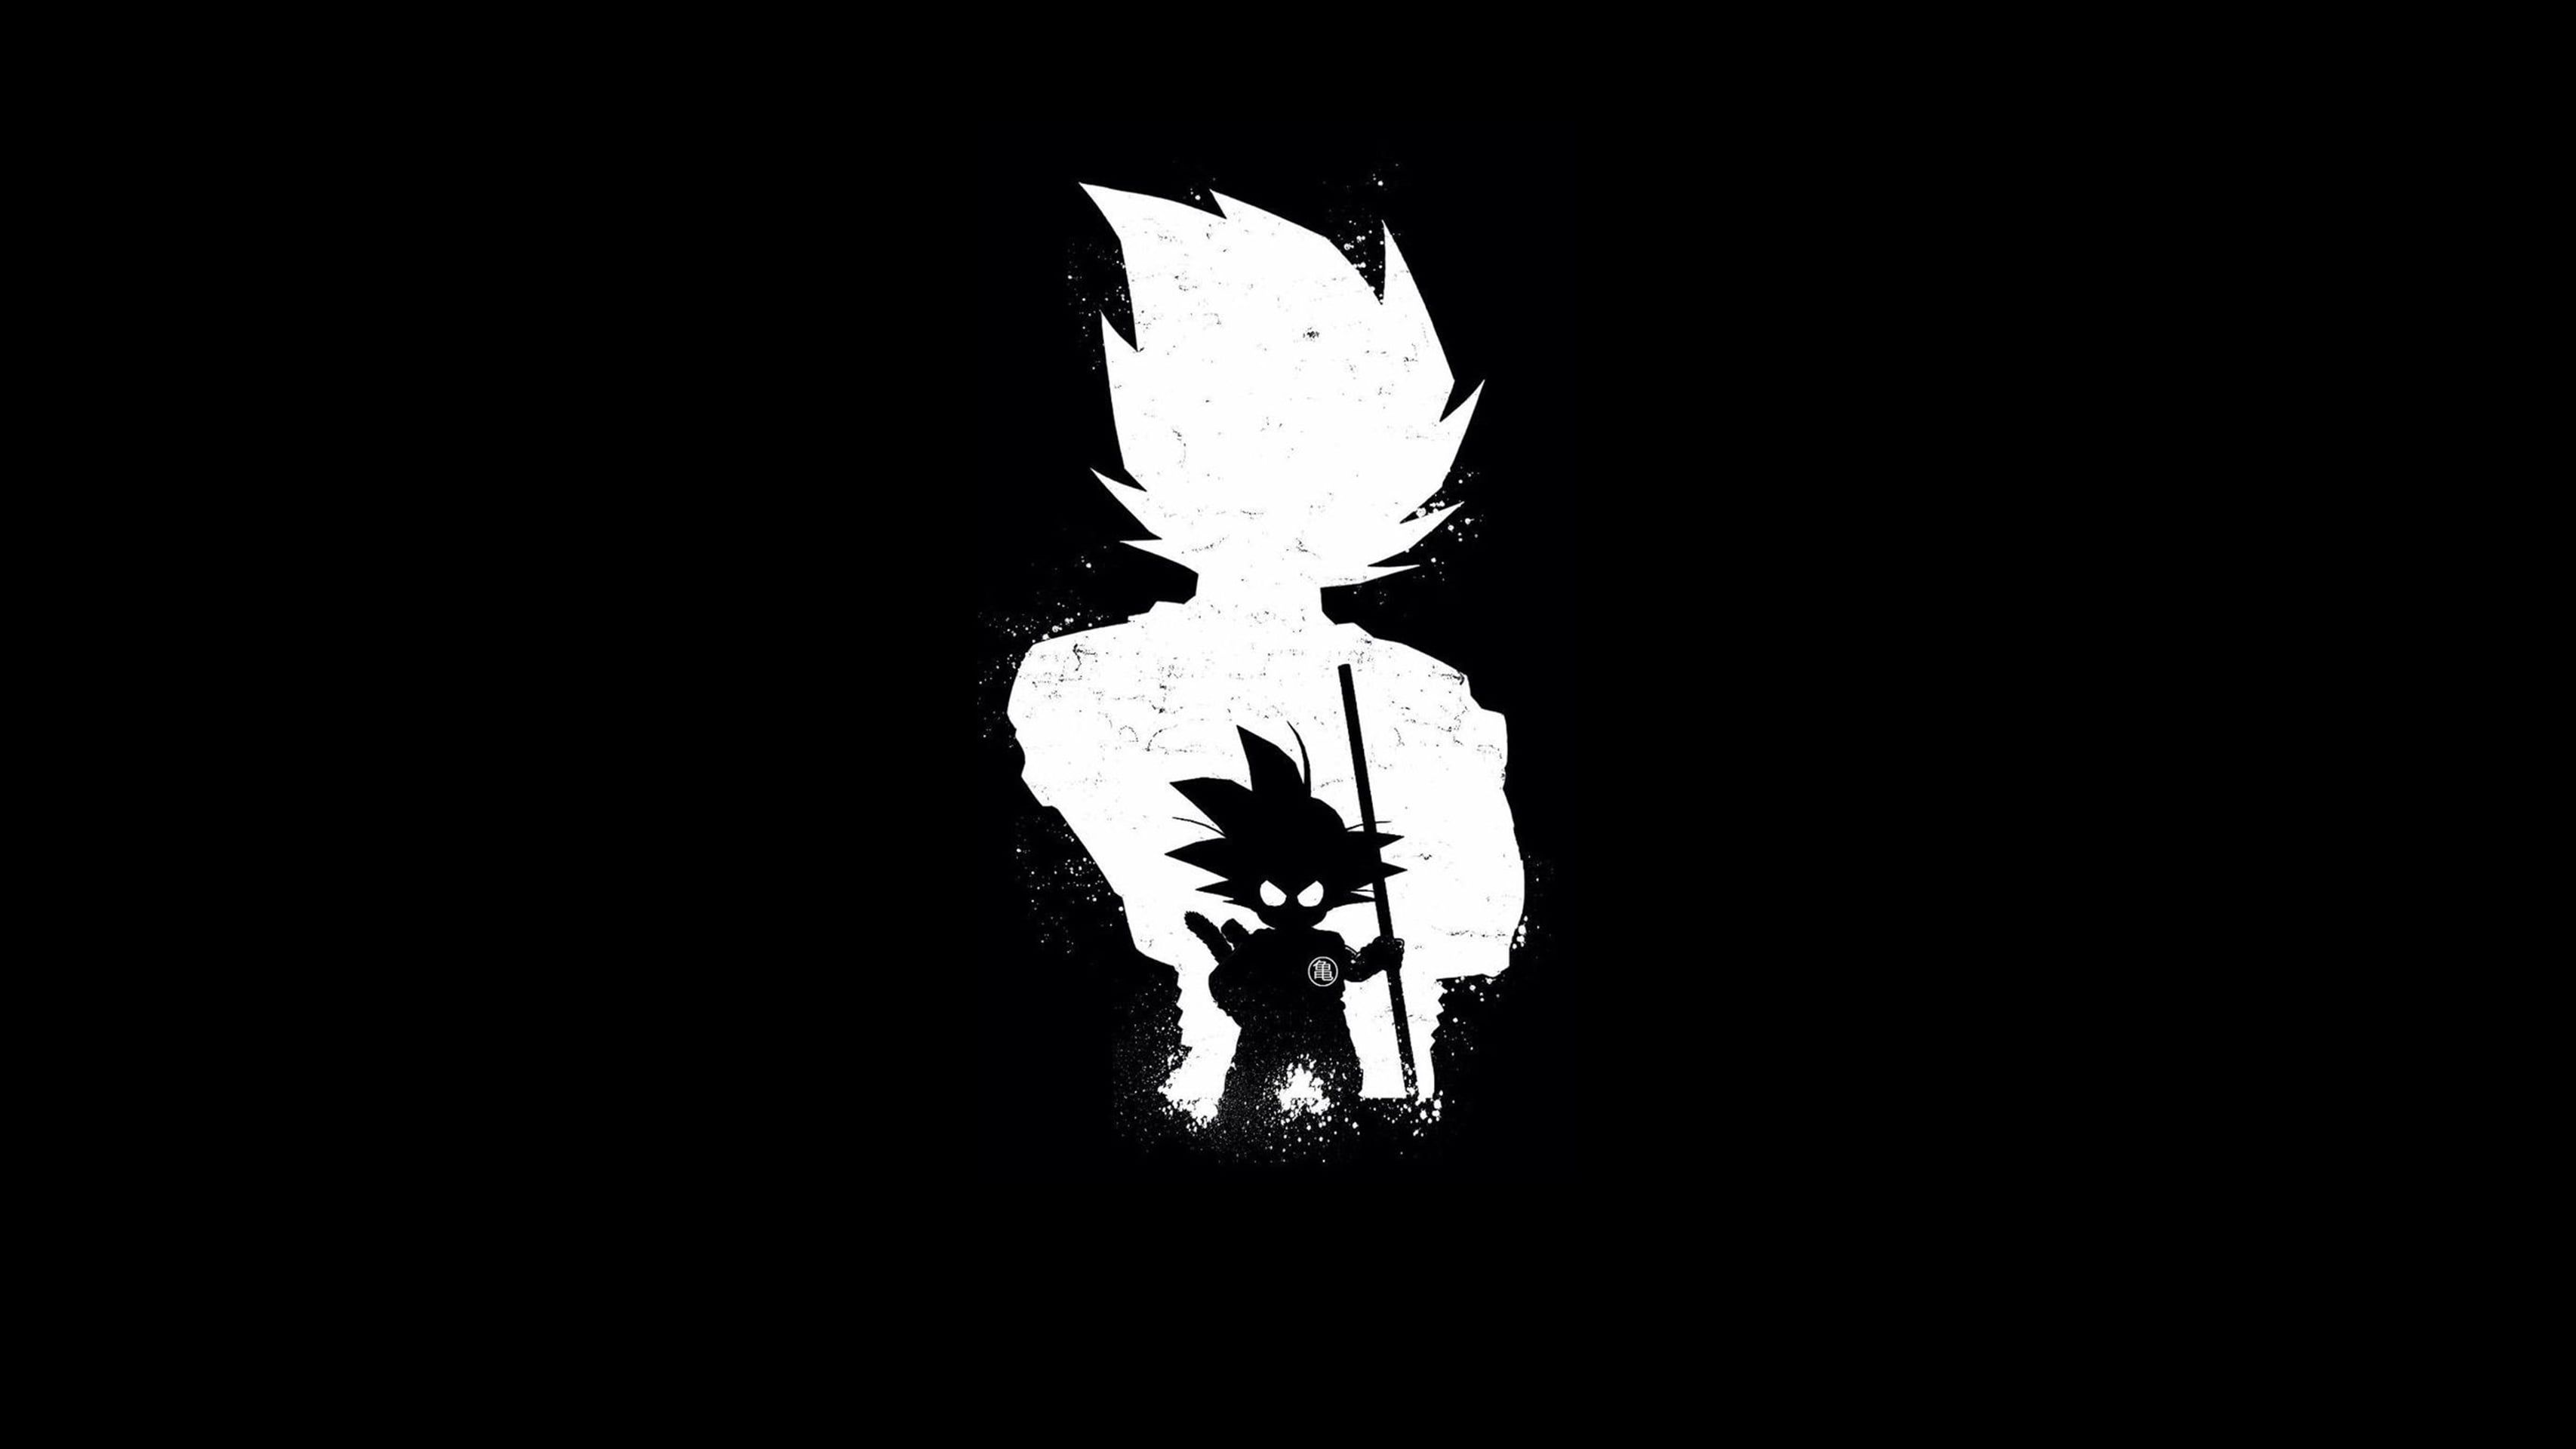 Wallpaper Son Goku And Vegeta Silhouette Dragon Ball Real People Lifestyles In 2020 Anime Wallpaper Phone Anime Wallpaper Iphone Cool Wallpapers Black And White